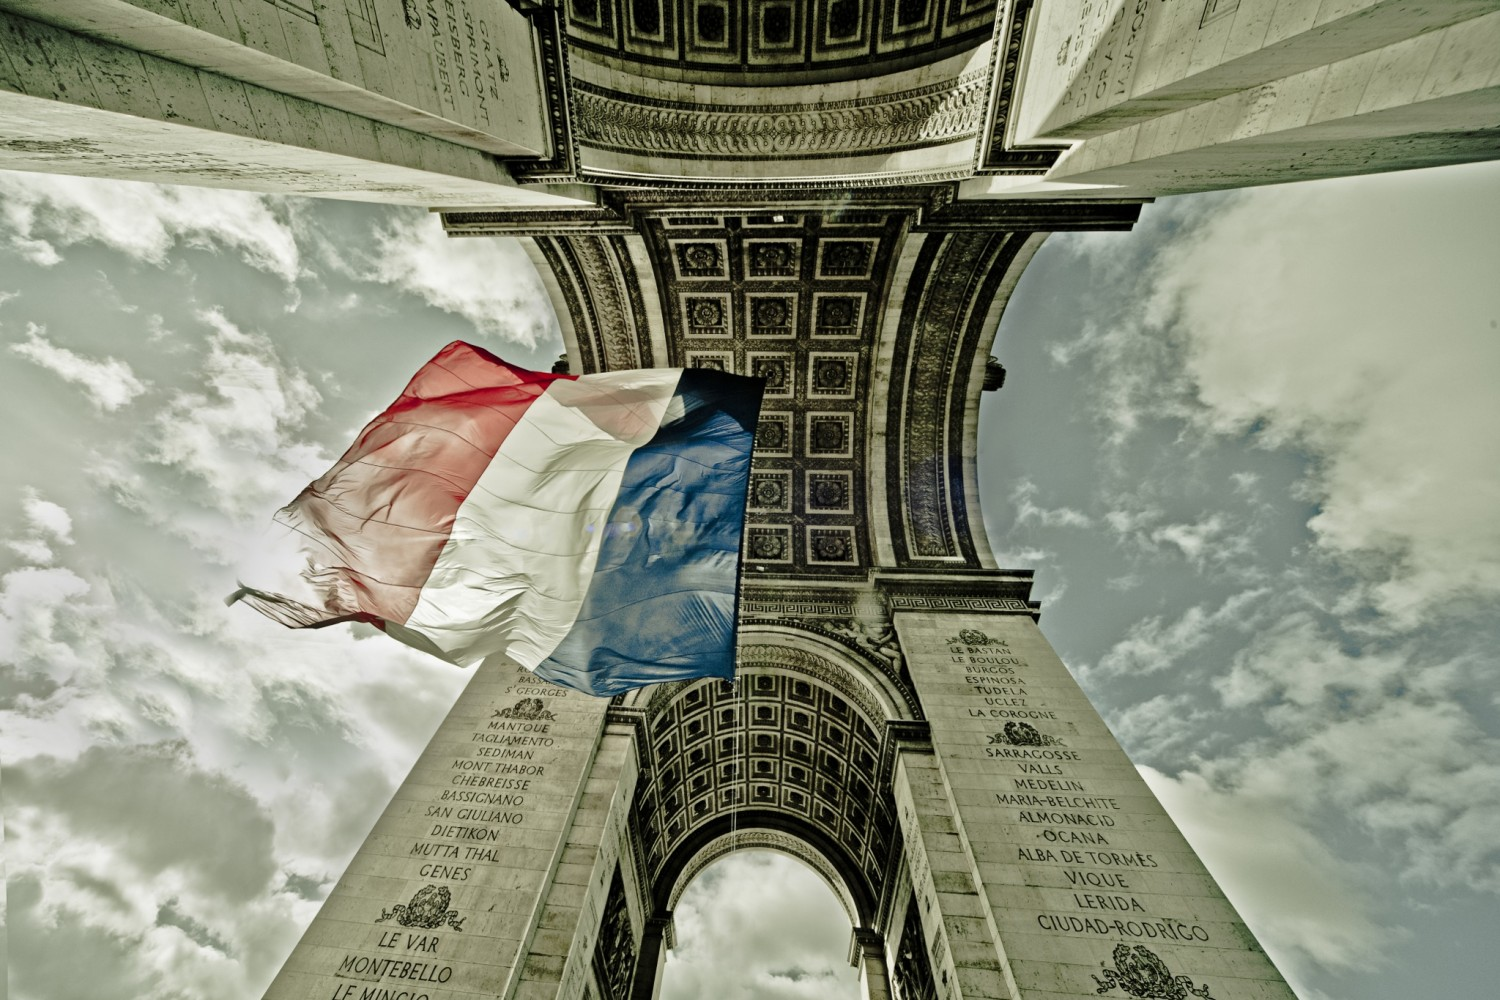 Prayers and Support for the People of Paris